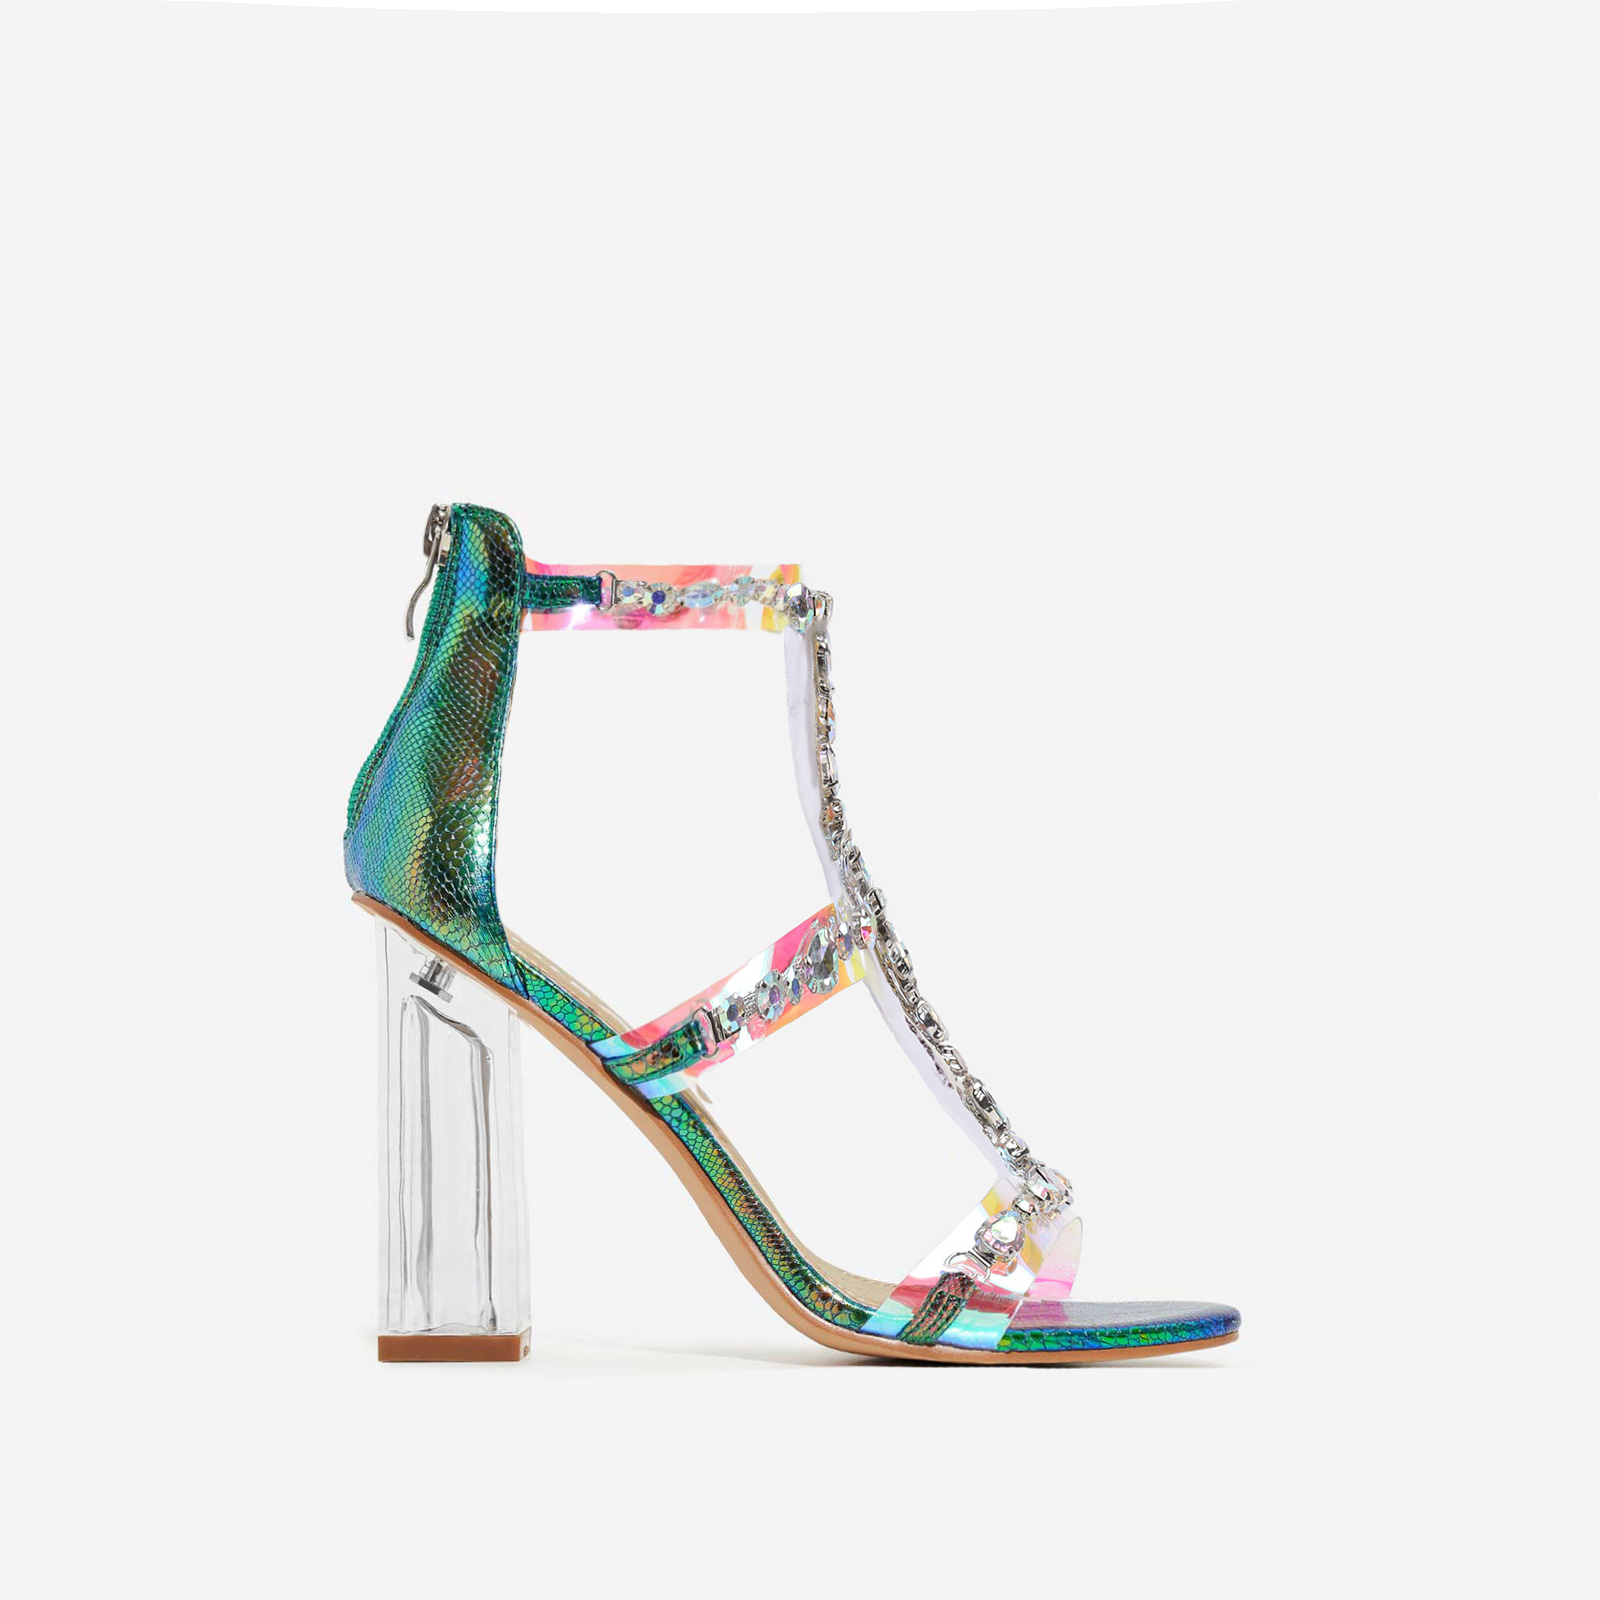 Merryme Jewel Embellished Clear Perspex Block Heel In Green Holographic Snake Print Faux Leather